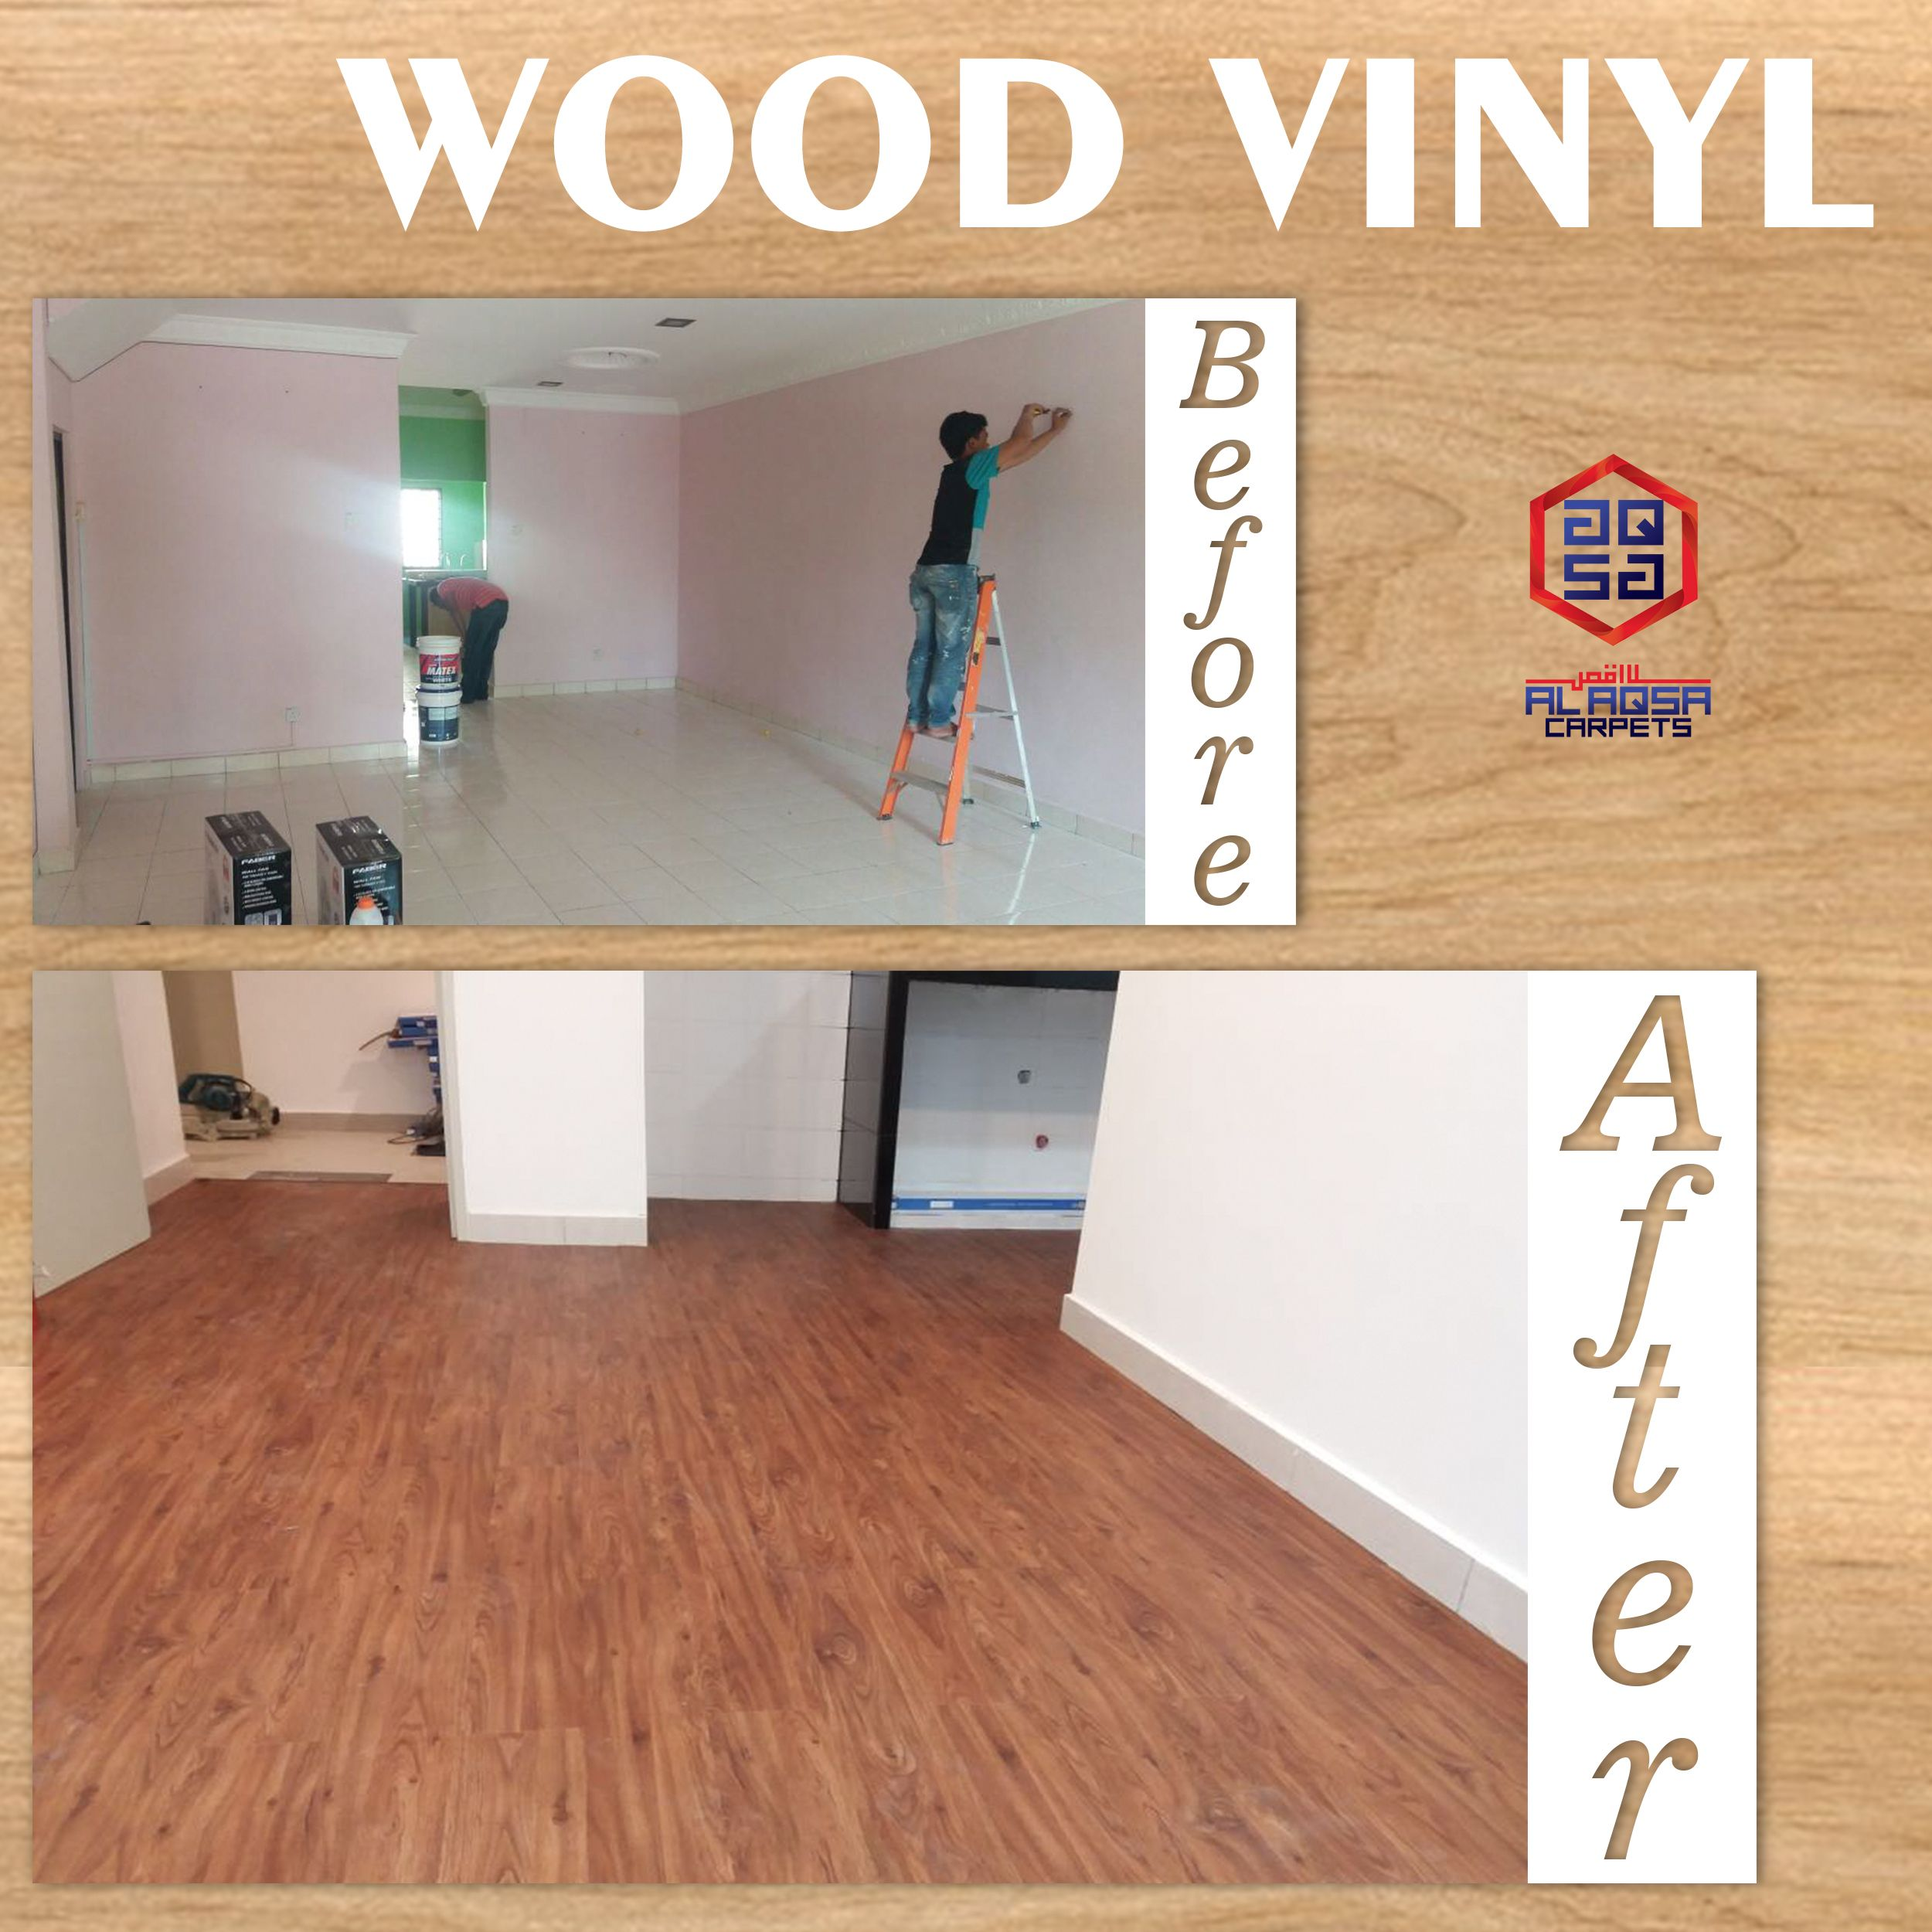 Our Recent Wood Vinyl Project Create A Refined Look With The Wood Vinyl Flooring Achieve An Authentic Wood Finish Wit Lantai Vinil Lantai Kayu Lantai